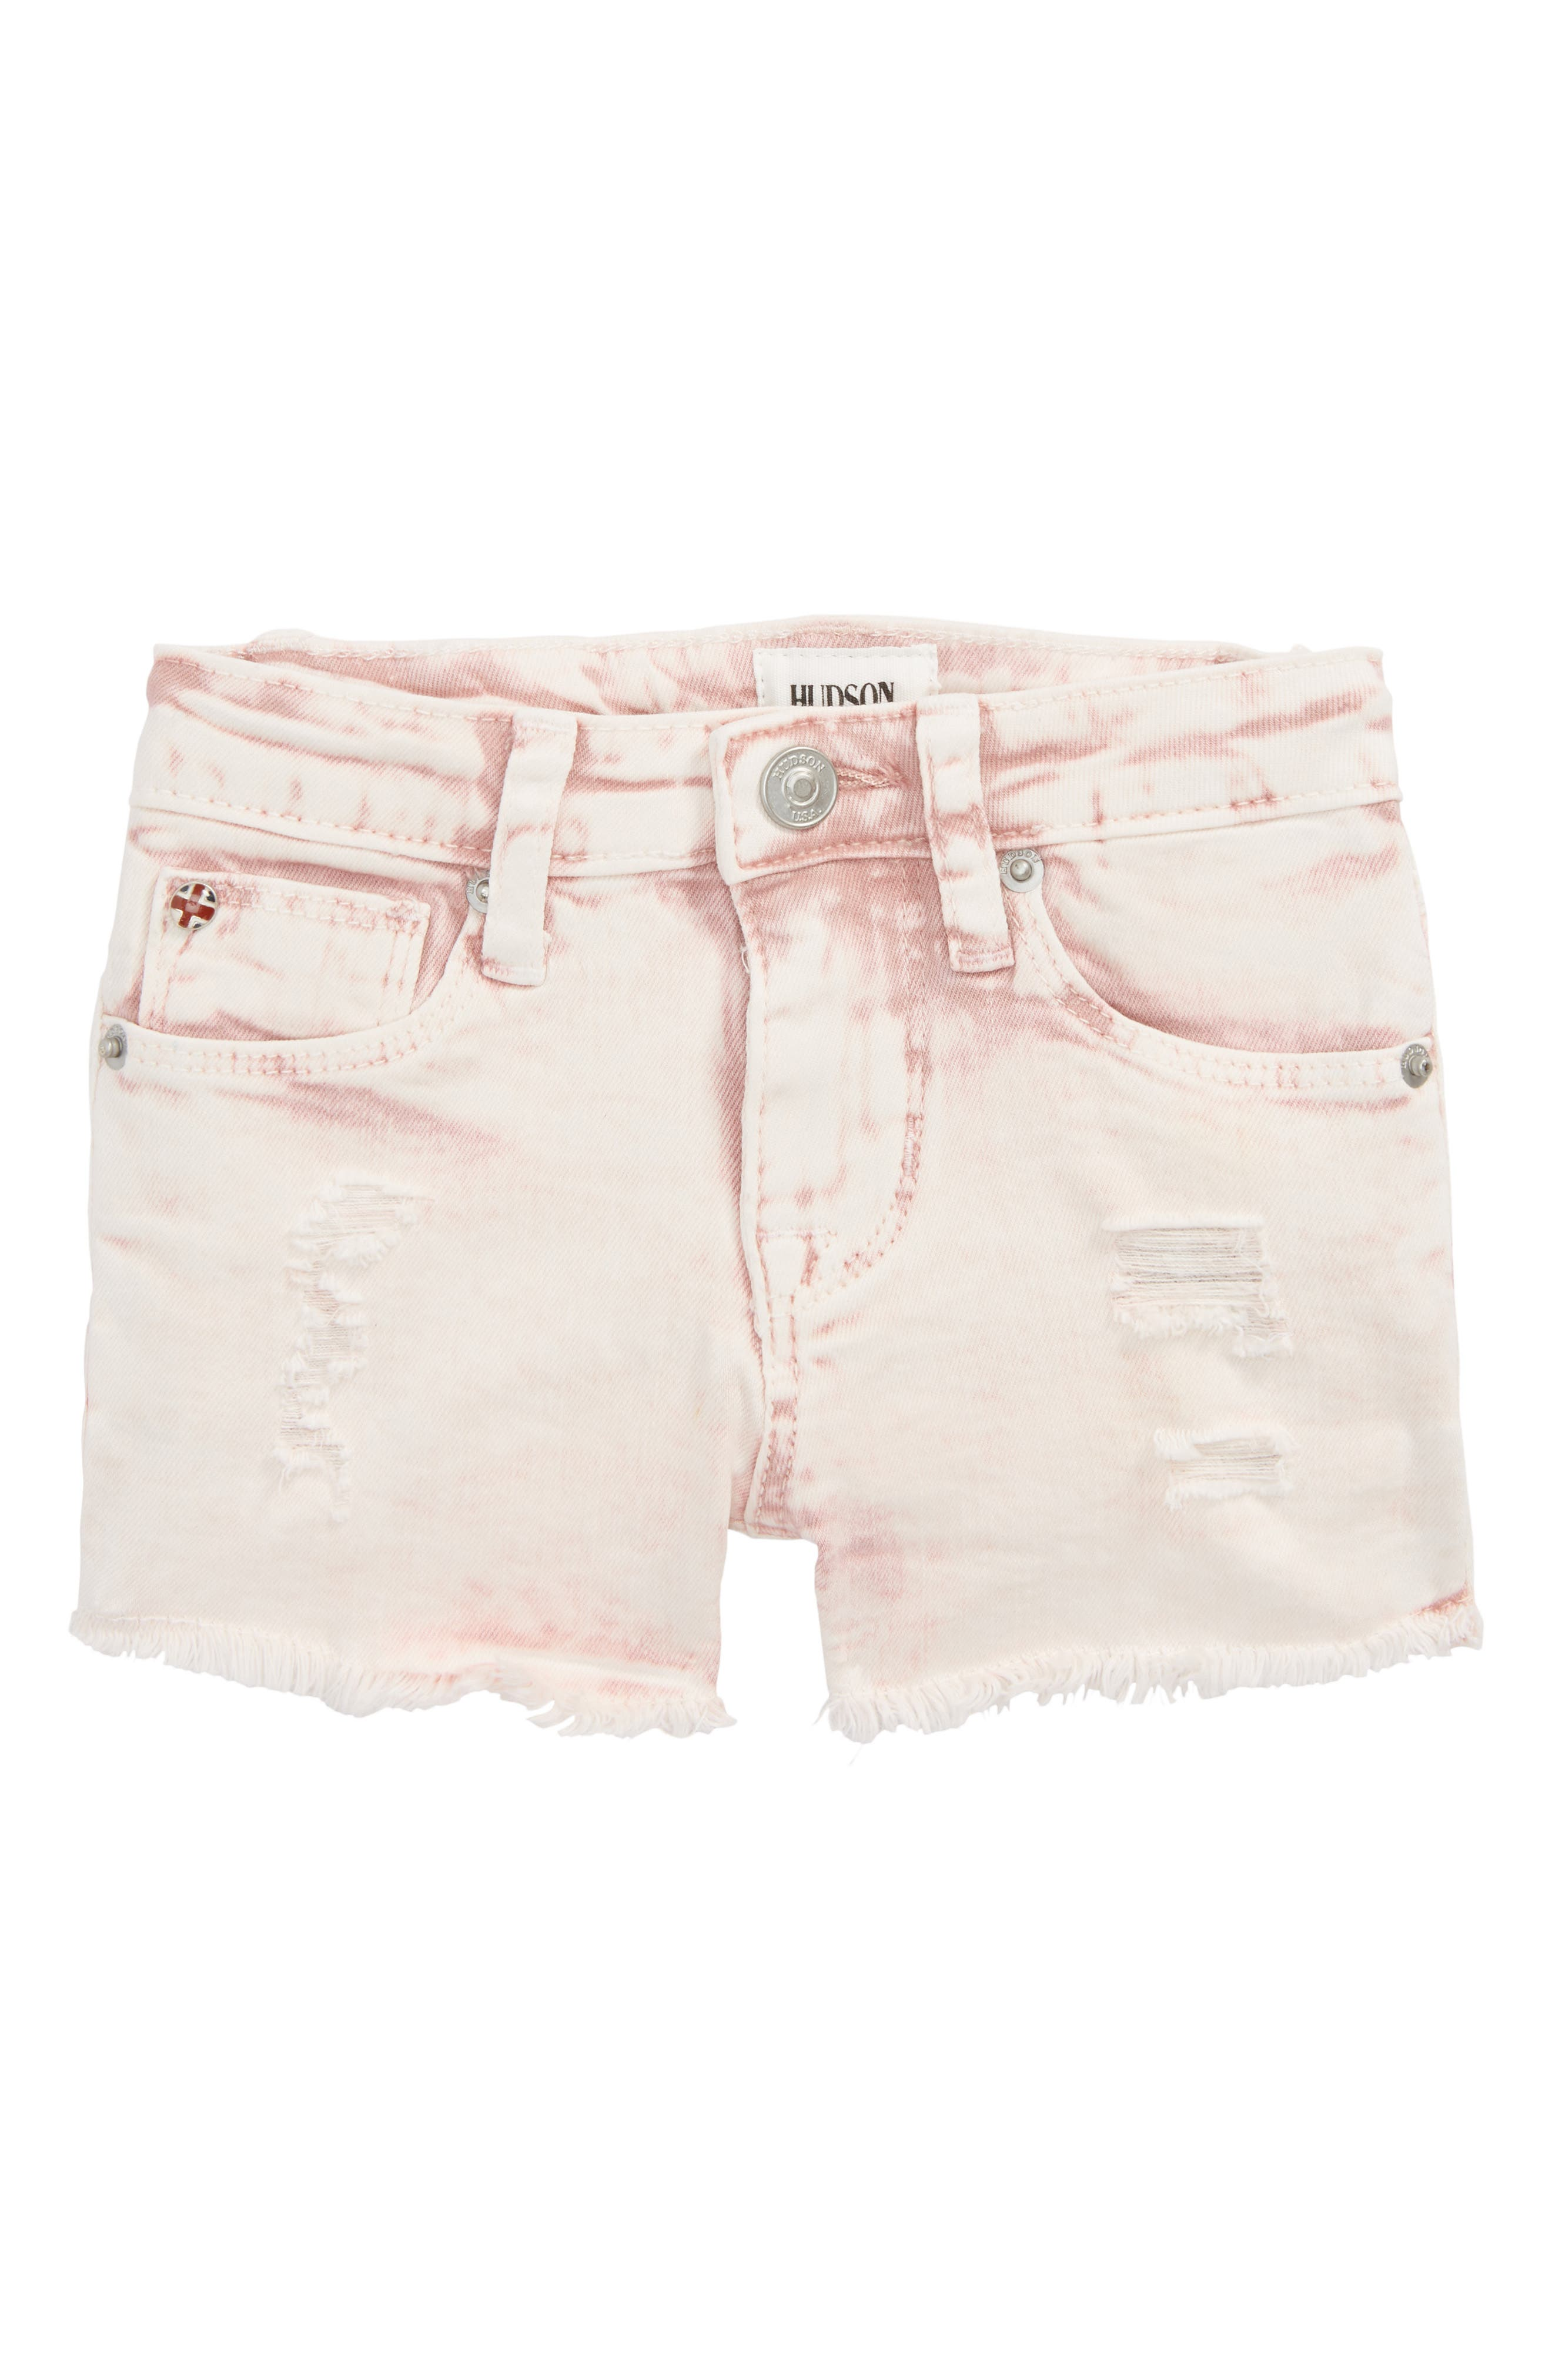 Hudson Kids Frayed Acid Wash Shorts (Baby Girls)